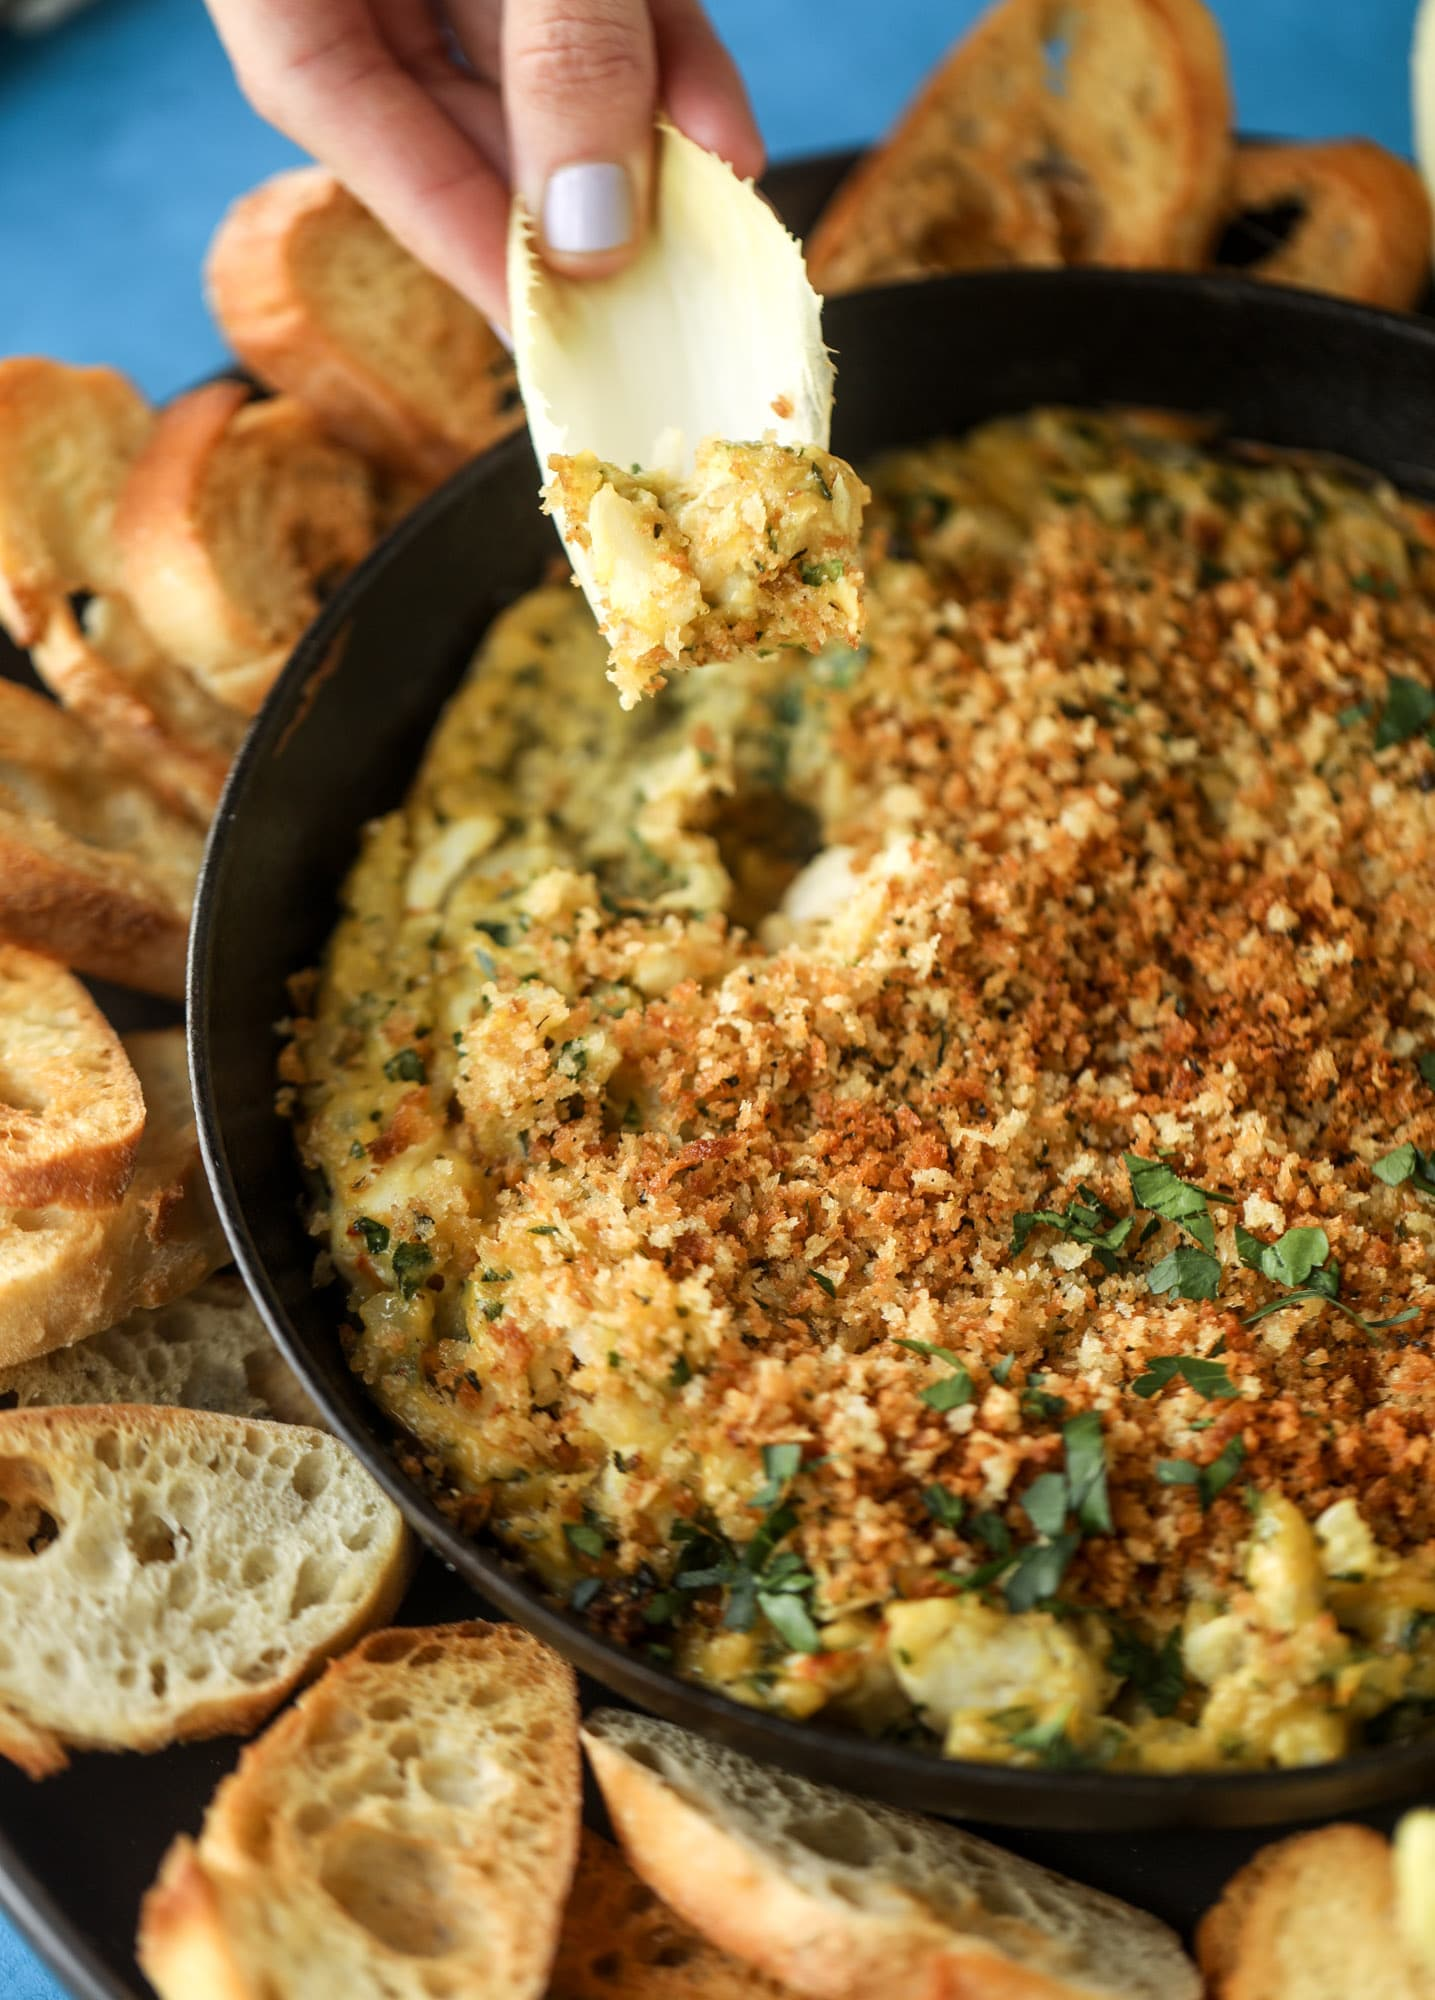 This deviled crab dip is the perfect hot summer appetizer. Lump crab, a creamy, decadent sauce, crunchy breadcrumbs and fresh endive for dipping. YES.